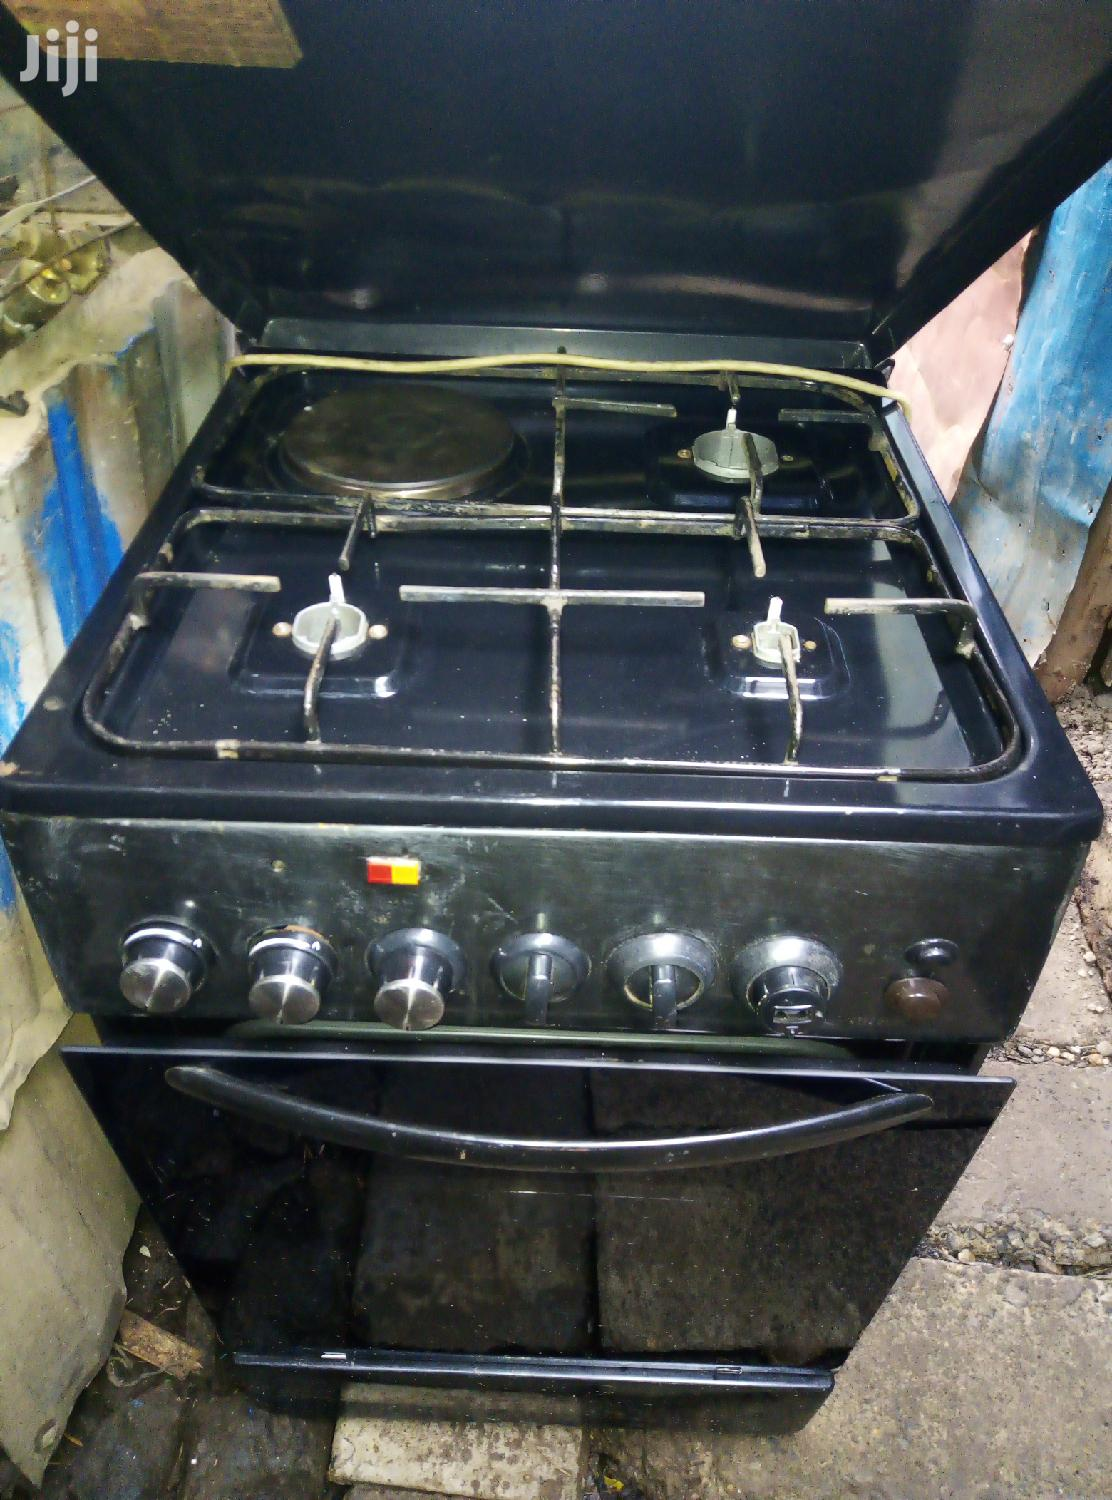 Ramtons Cooker 3gas 1 Electric | Kitchen Appliances for sale in Nairobi Central, Nairobi, Kenya